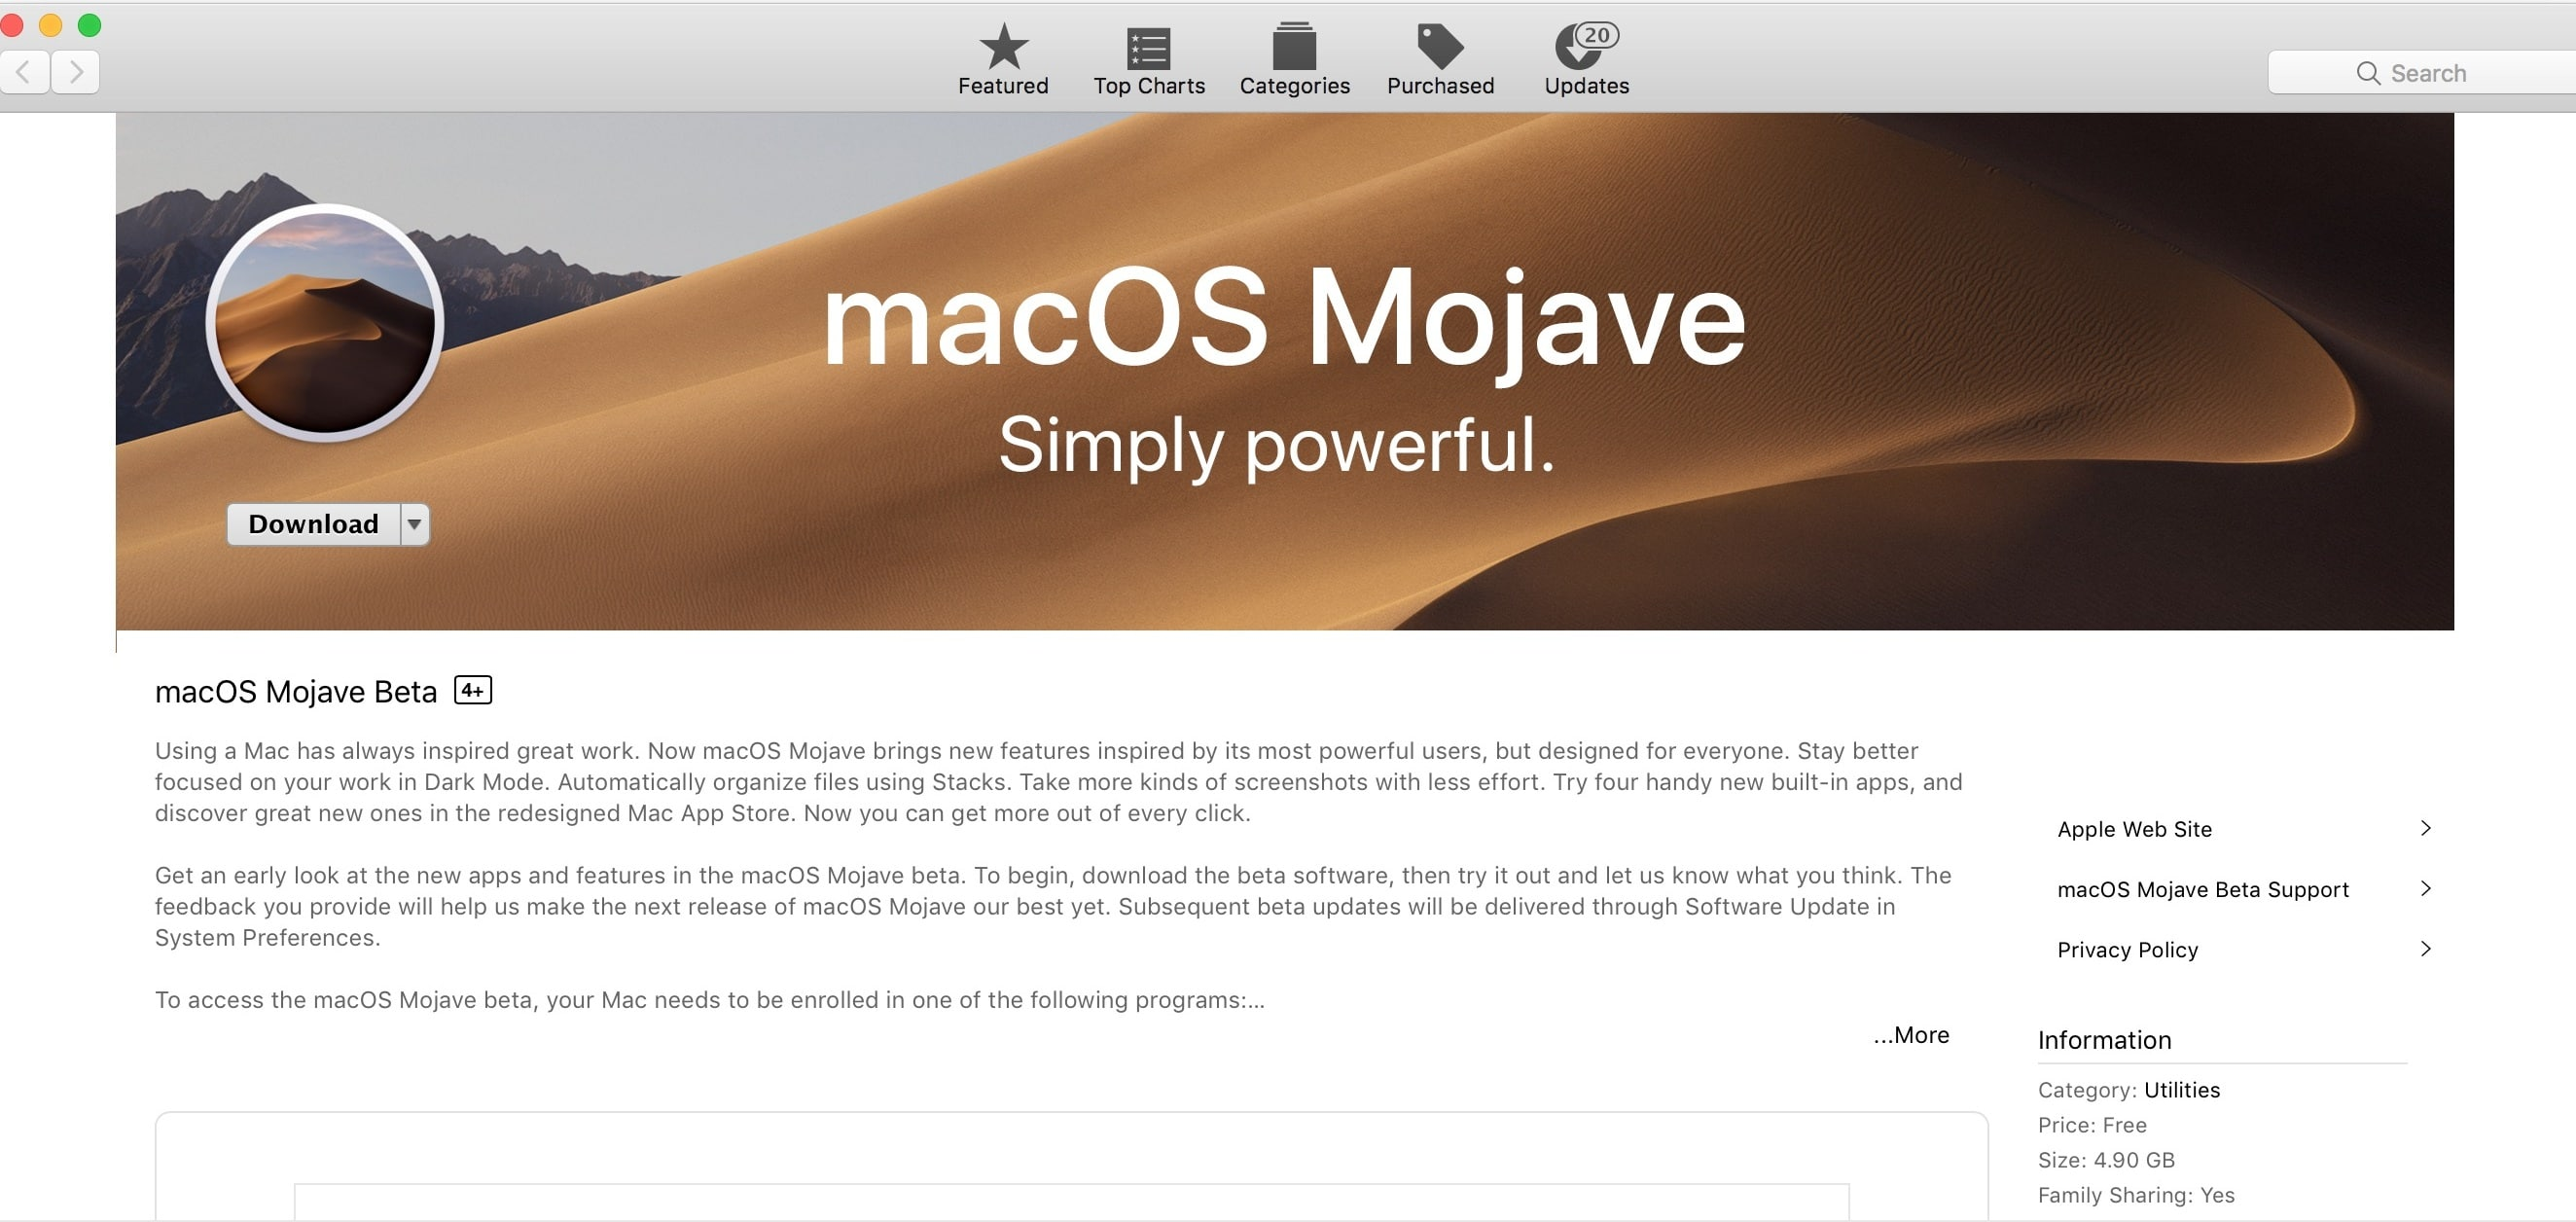 Download the macOS Mojave